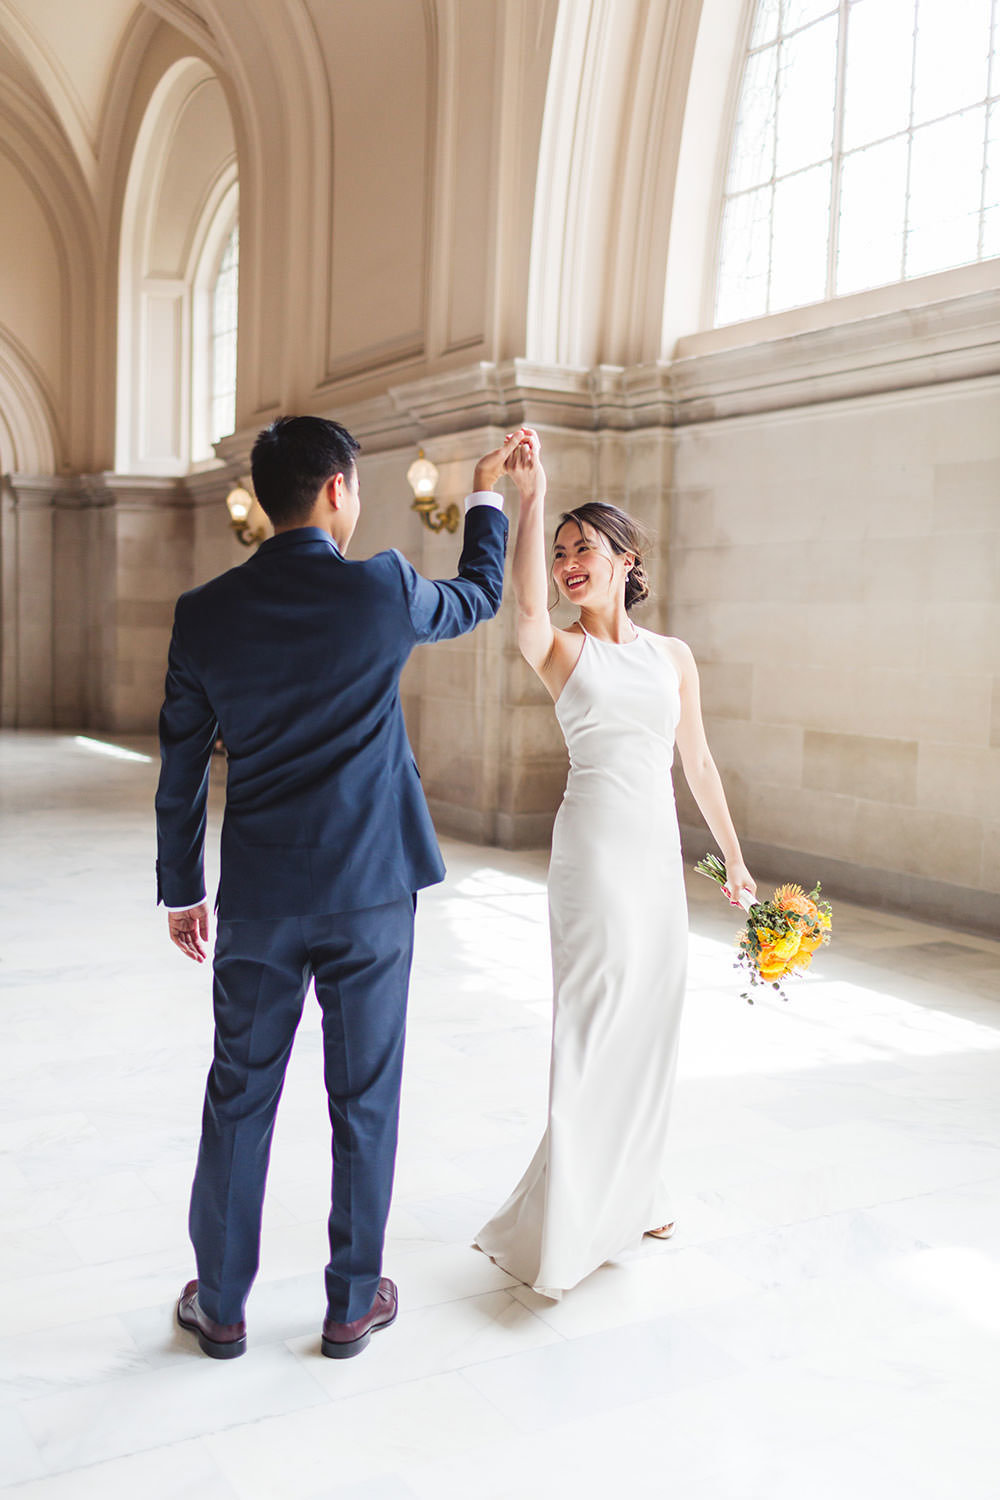 dancing twirling bride and groom celebrating their san francisco city hall wedding